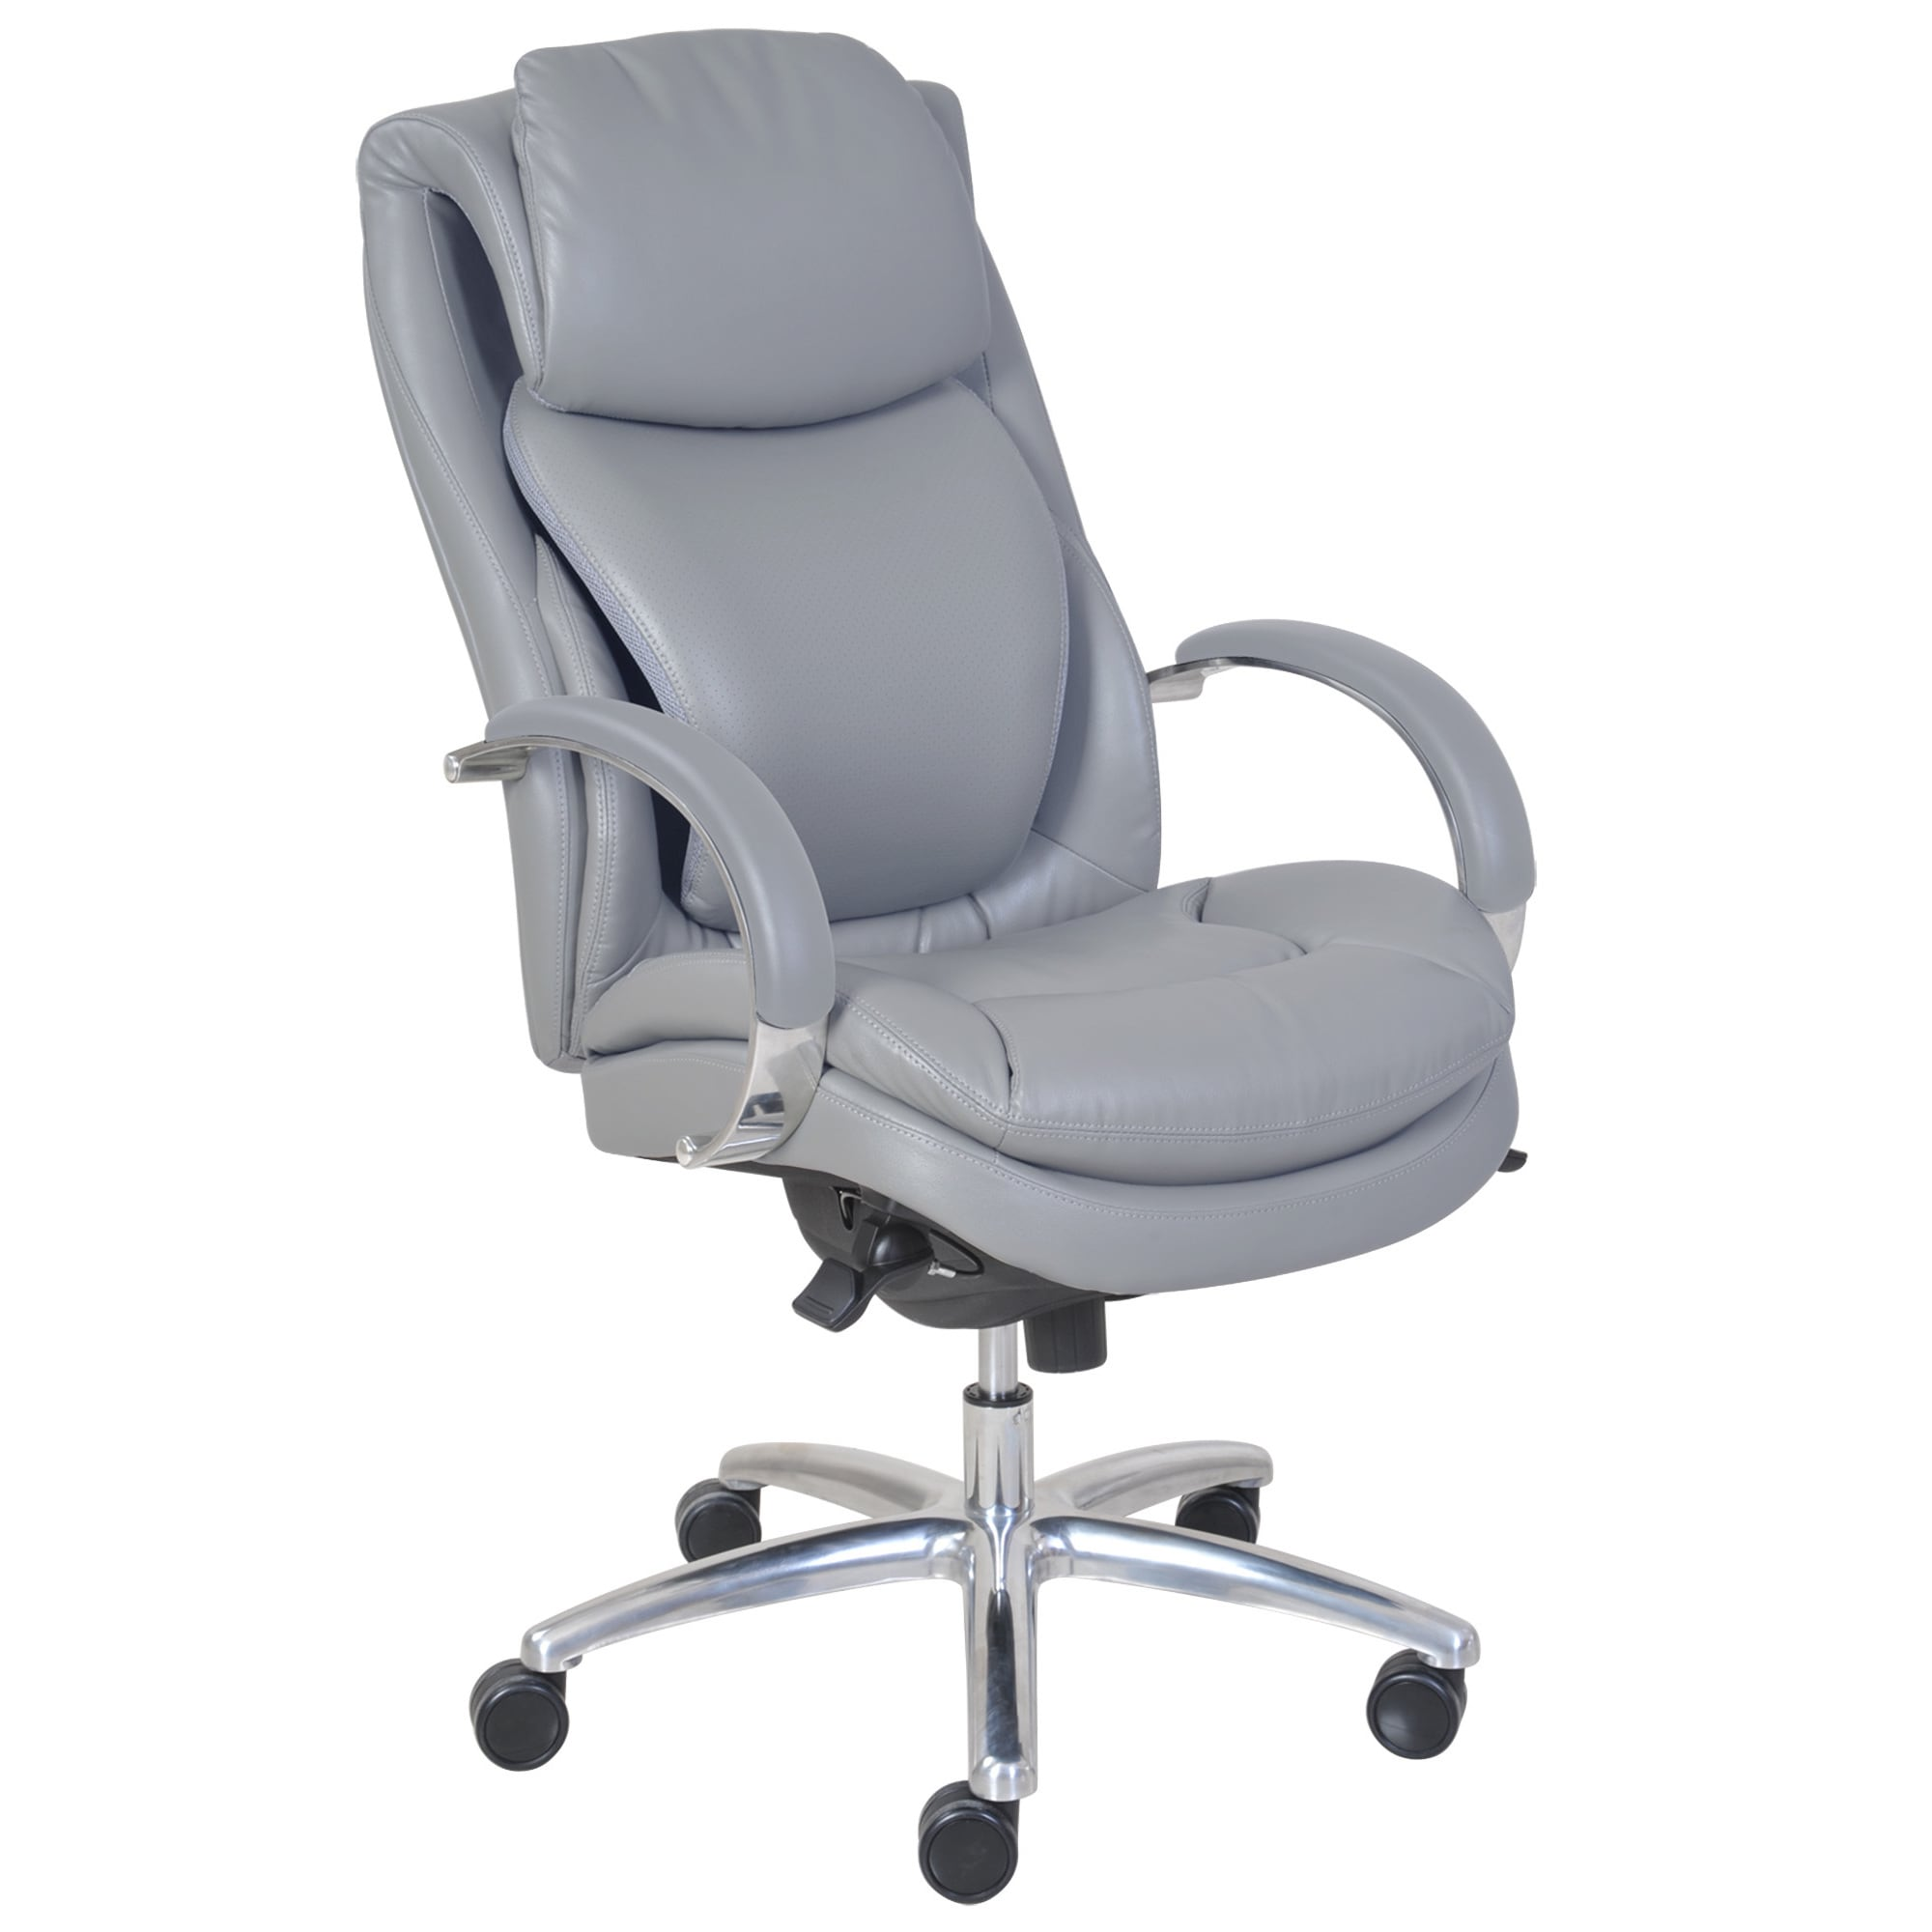 Shop Serta Wellness By Design Air Commercial Series 100 Executive Puresoft  Faux Leather Chair   Free Shipping Today   Overstock.com   10068676